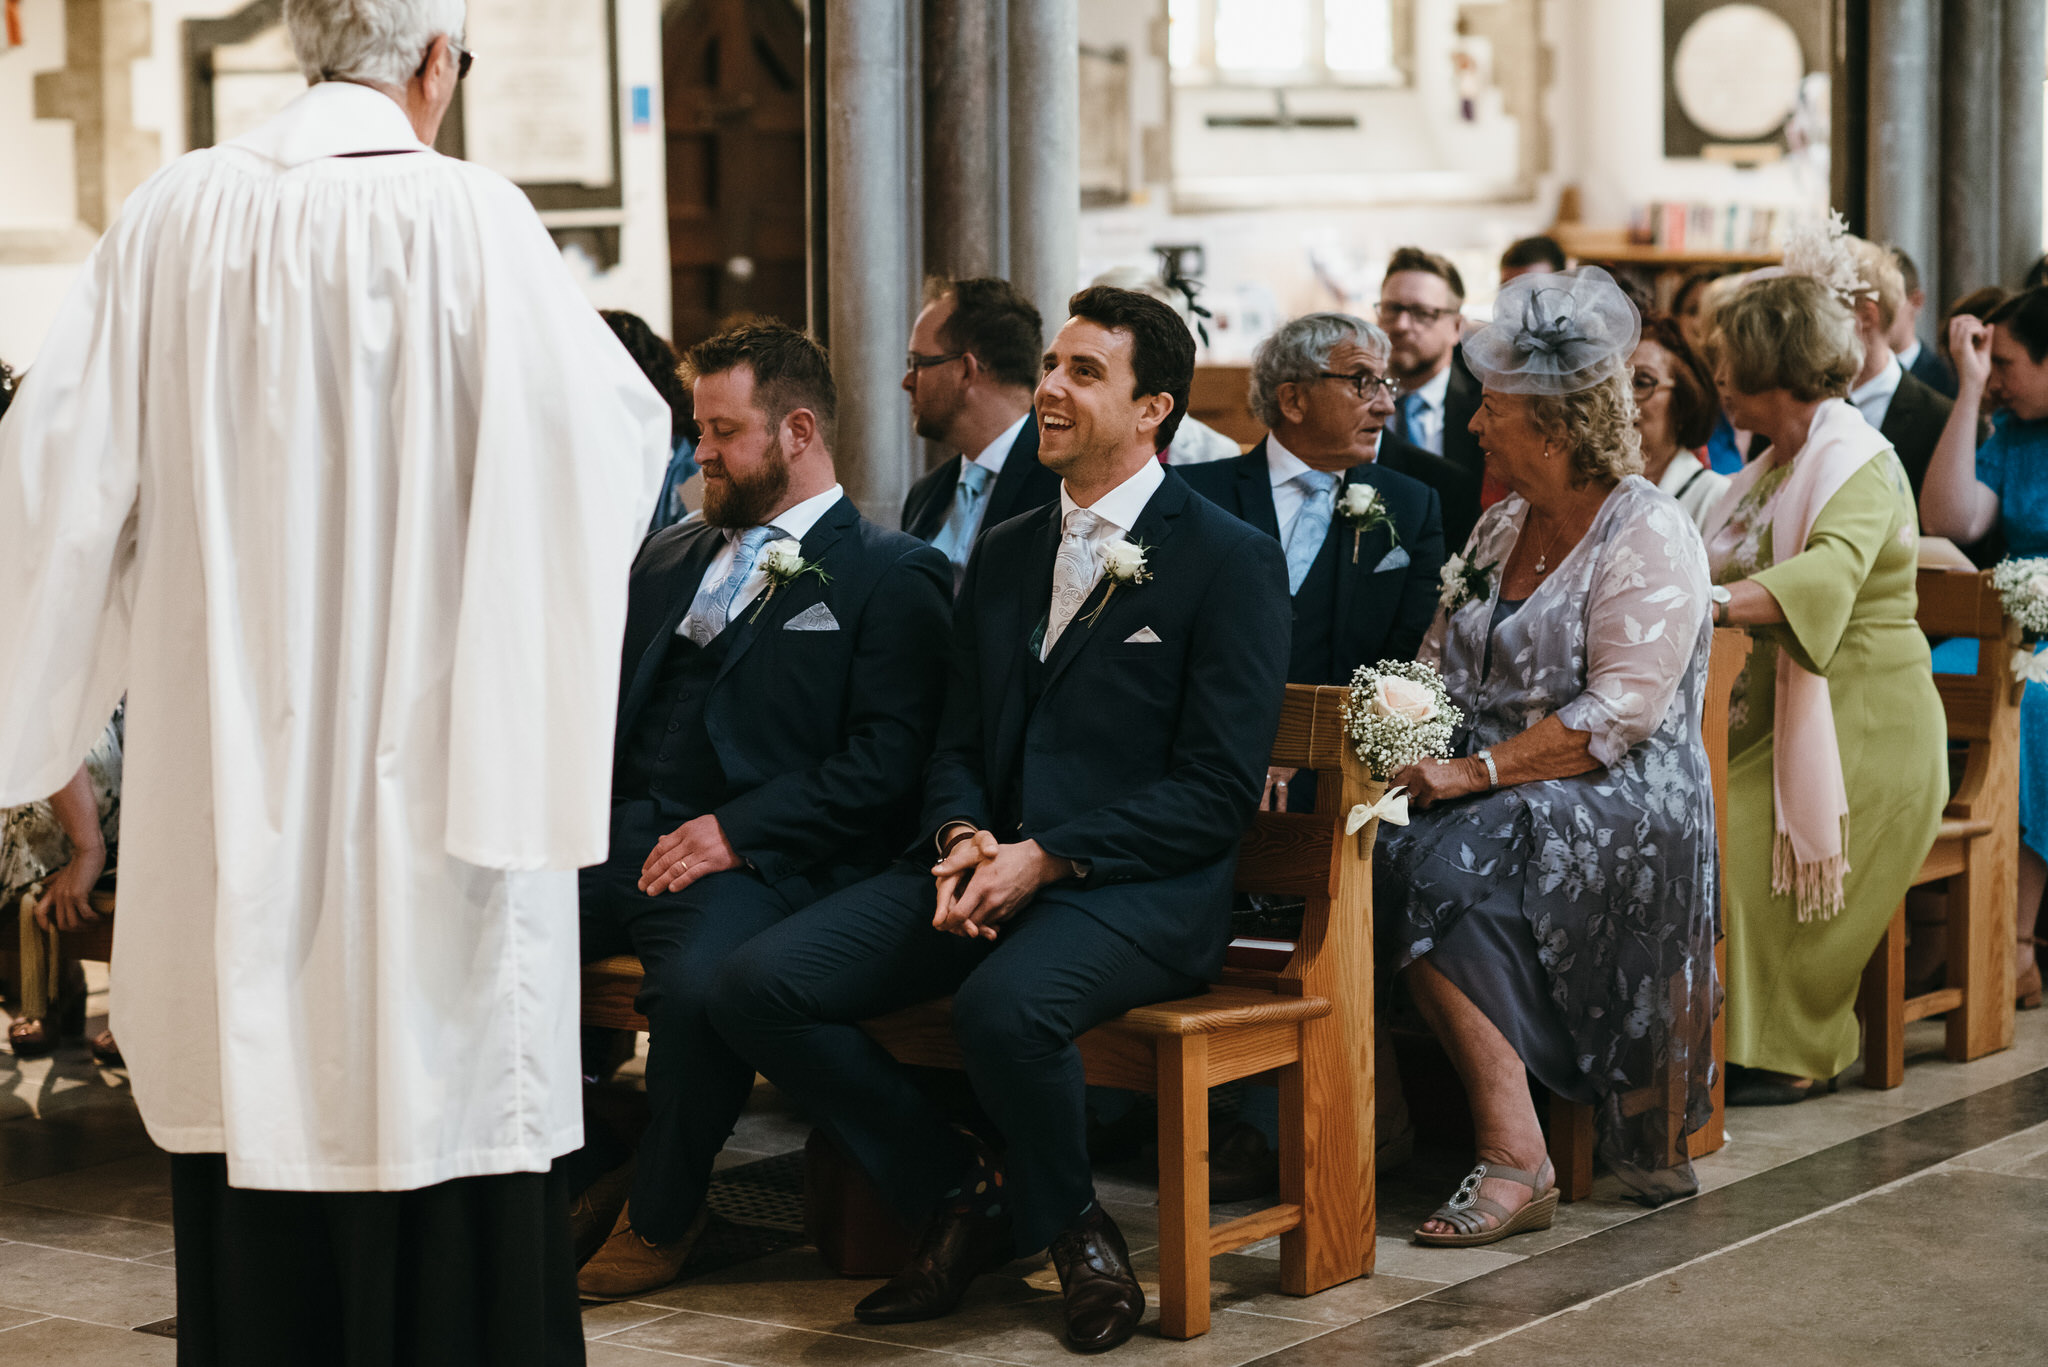 Sidmouth church wedding photography